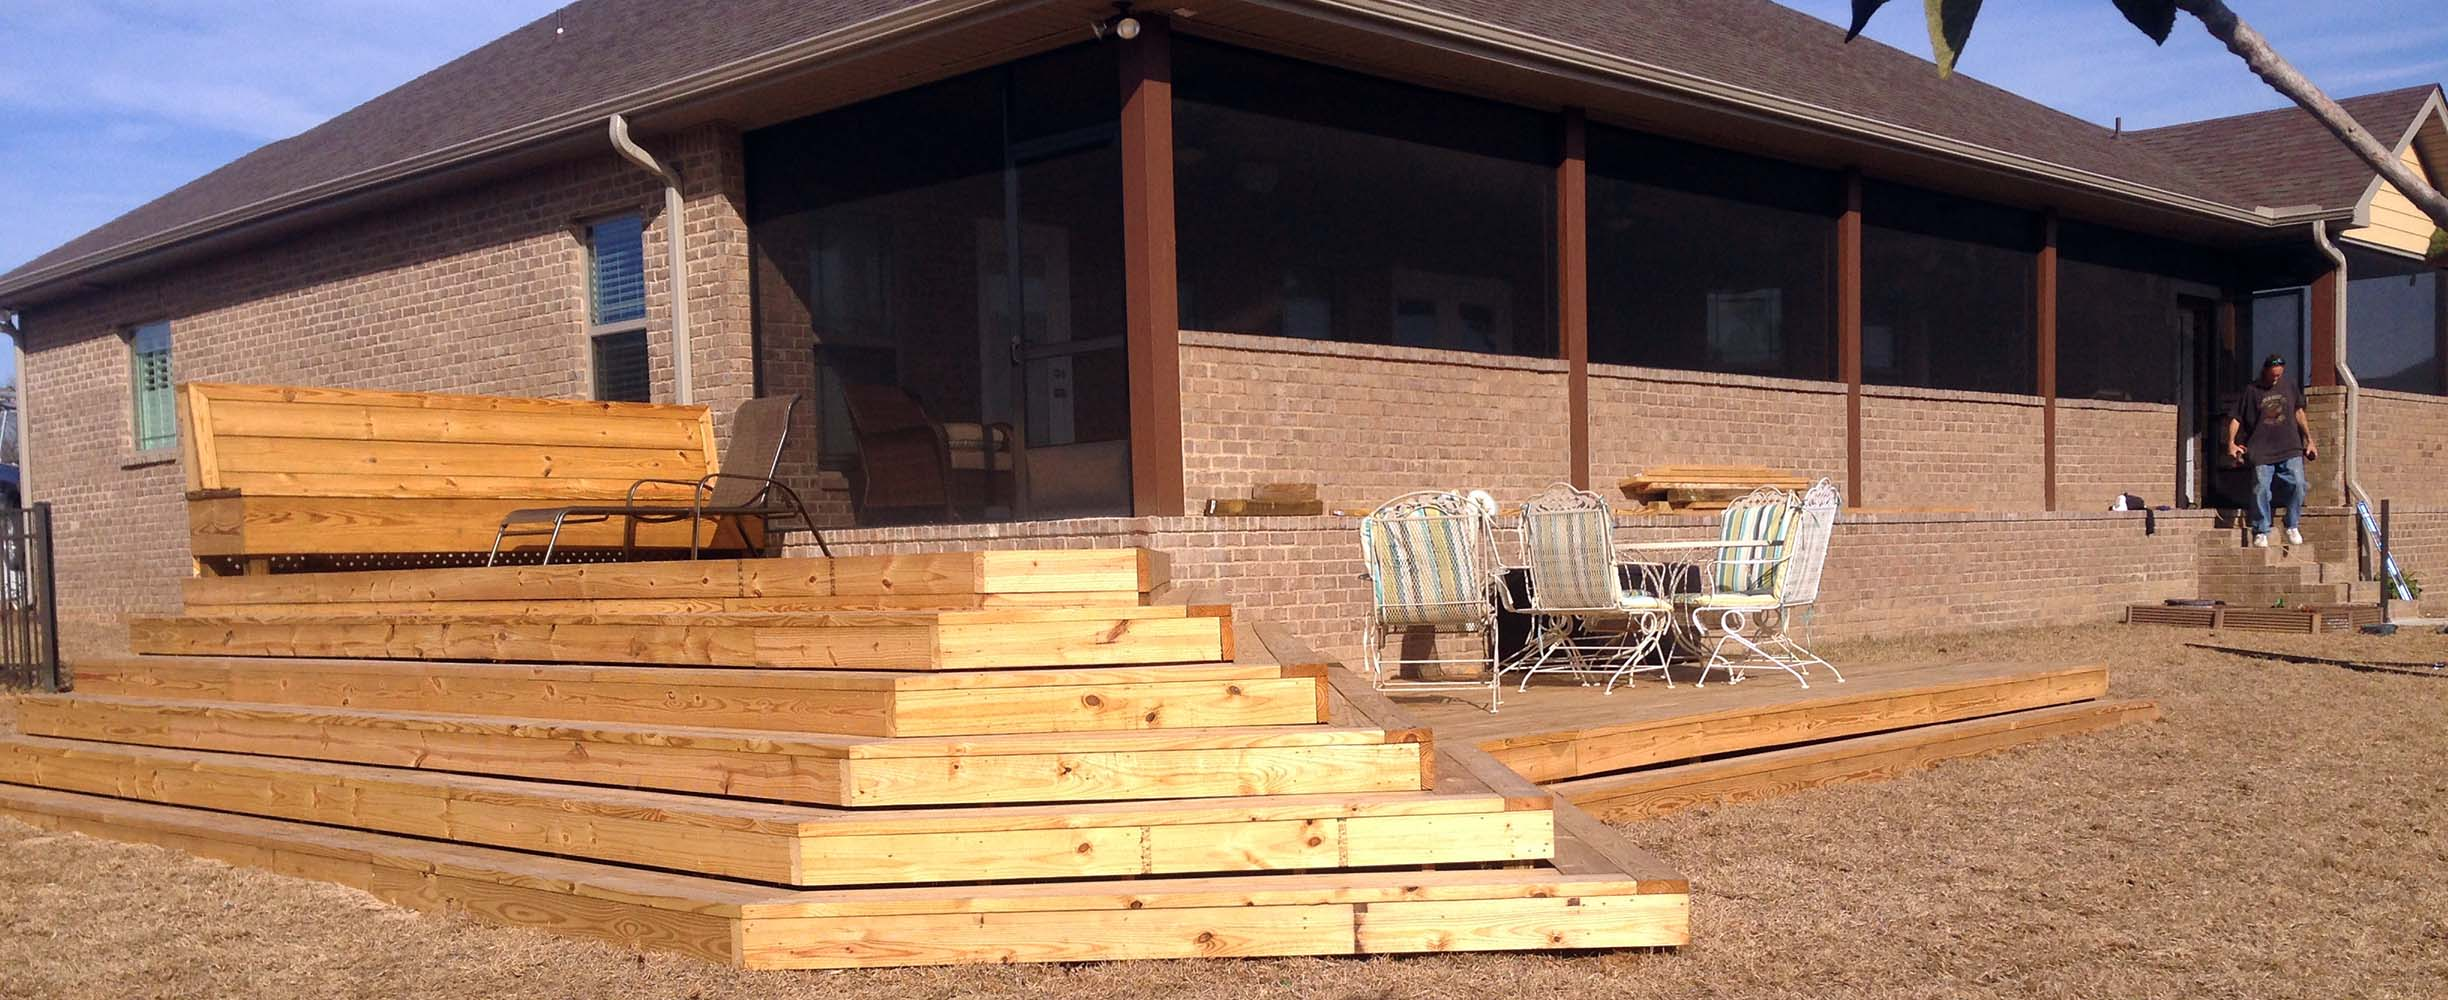 Wooden dech with wooden steps adding functionality to a house while making the garden more beautiful and prectical